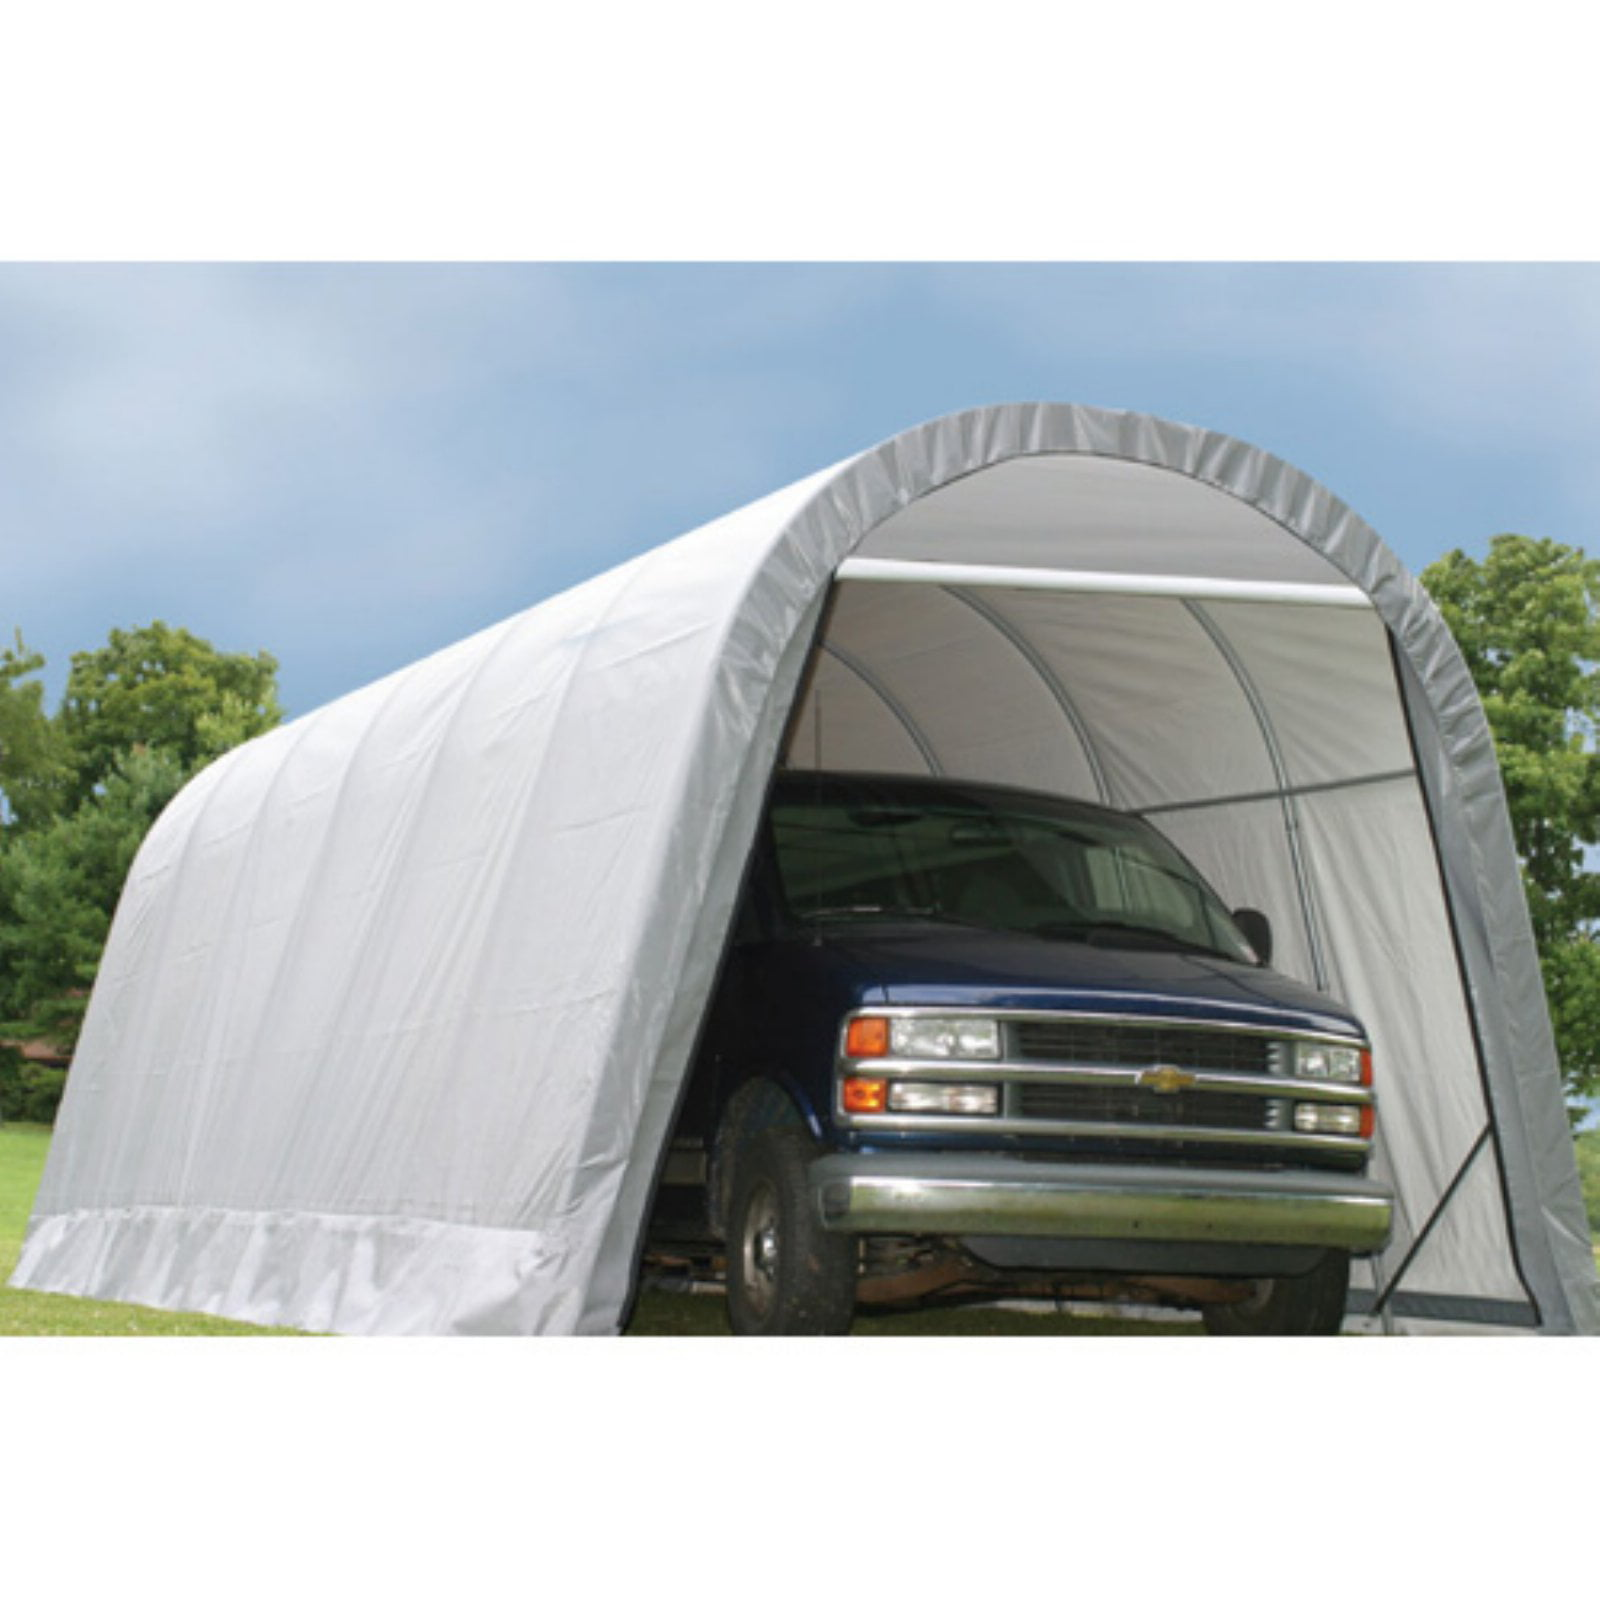 Shelterlogic 13' x 28' x 10' Round Style Car Shelter by ShelterLogic Corp.